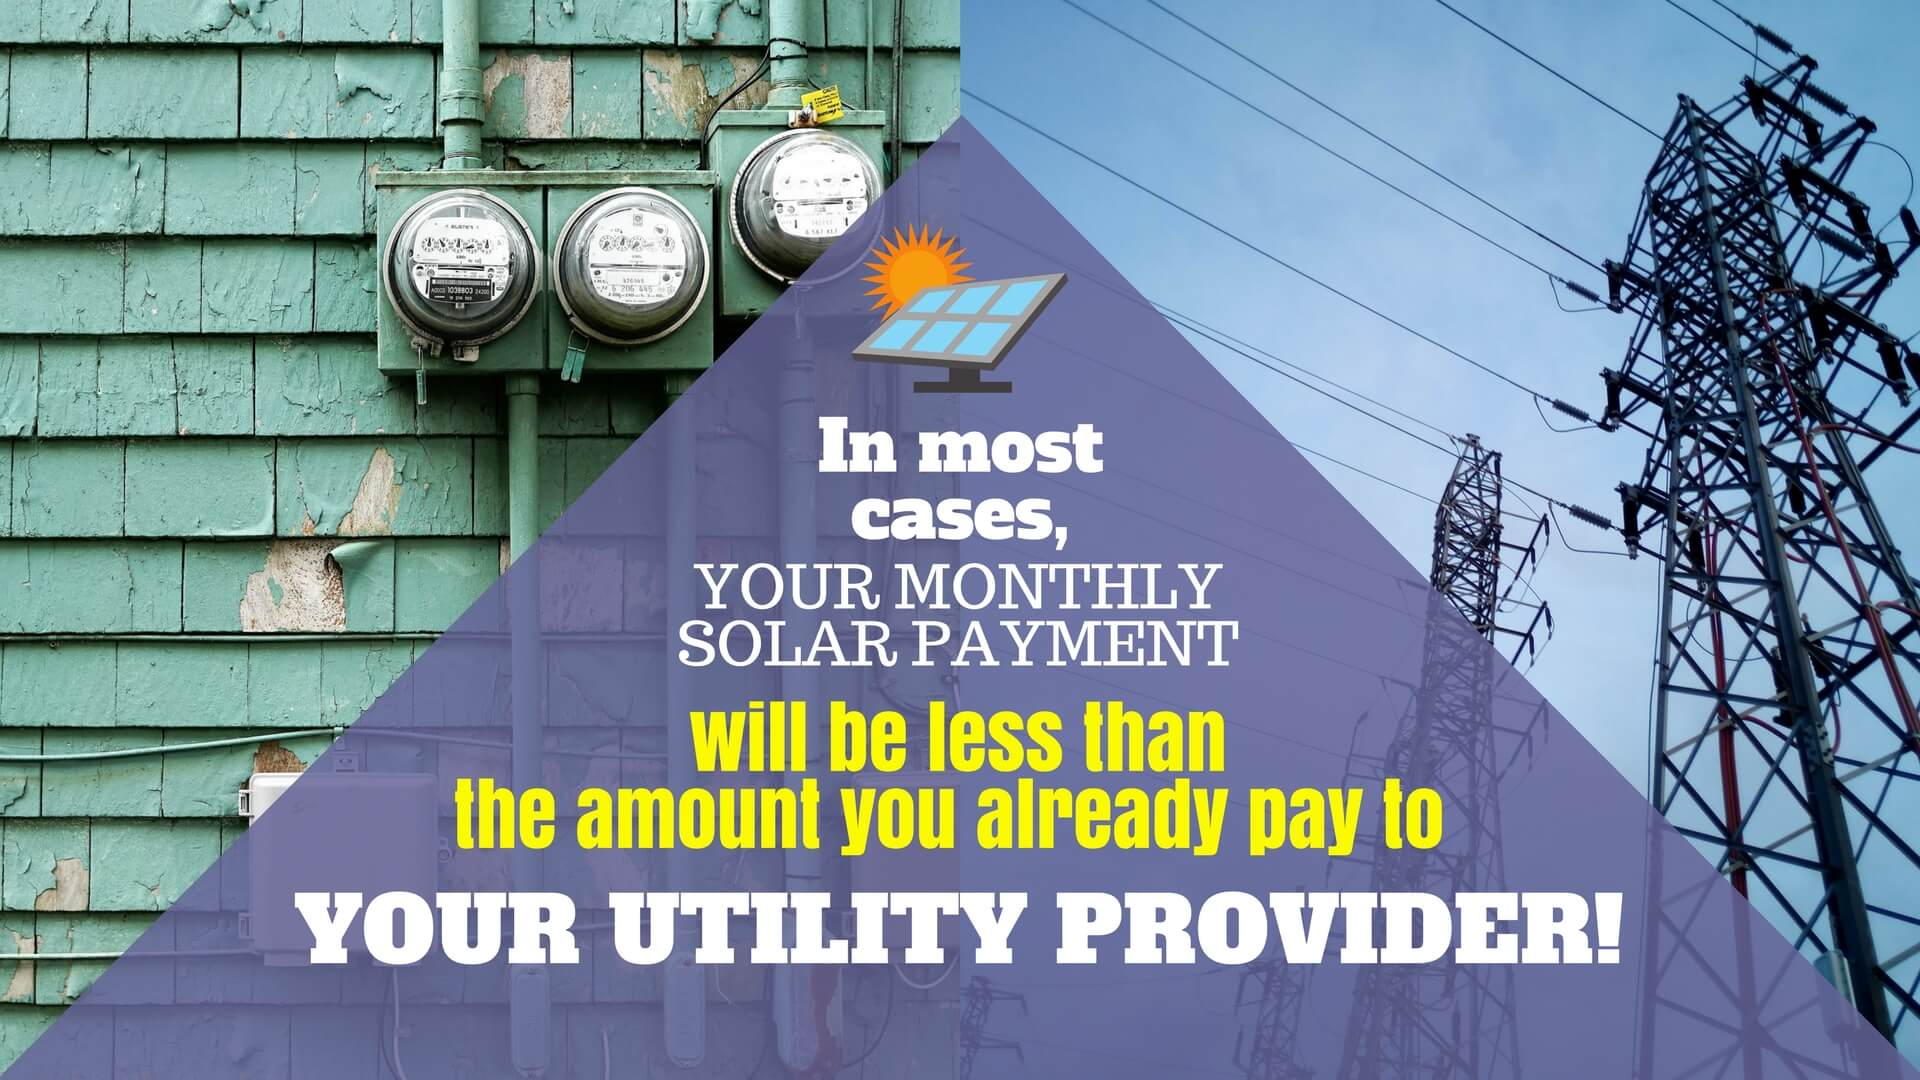 In most cases, your monthly solar payment will be less than the amount you already pay to your utility provider.